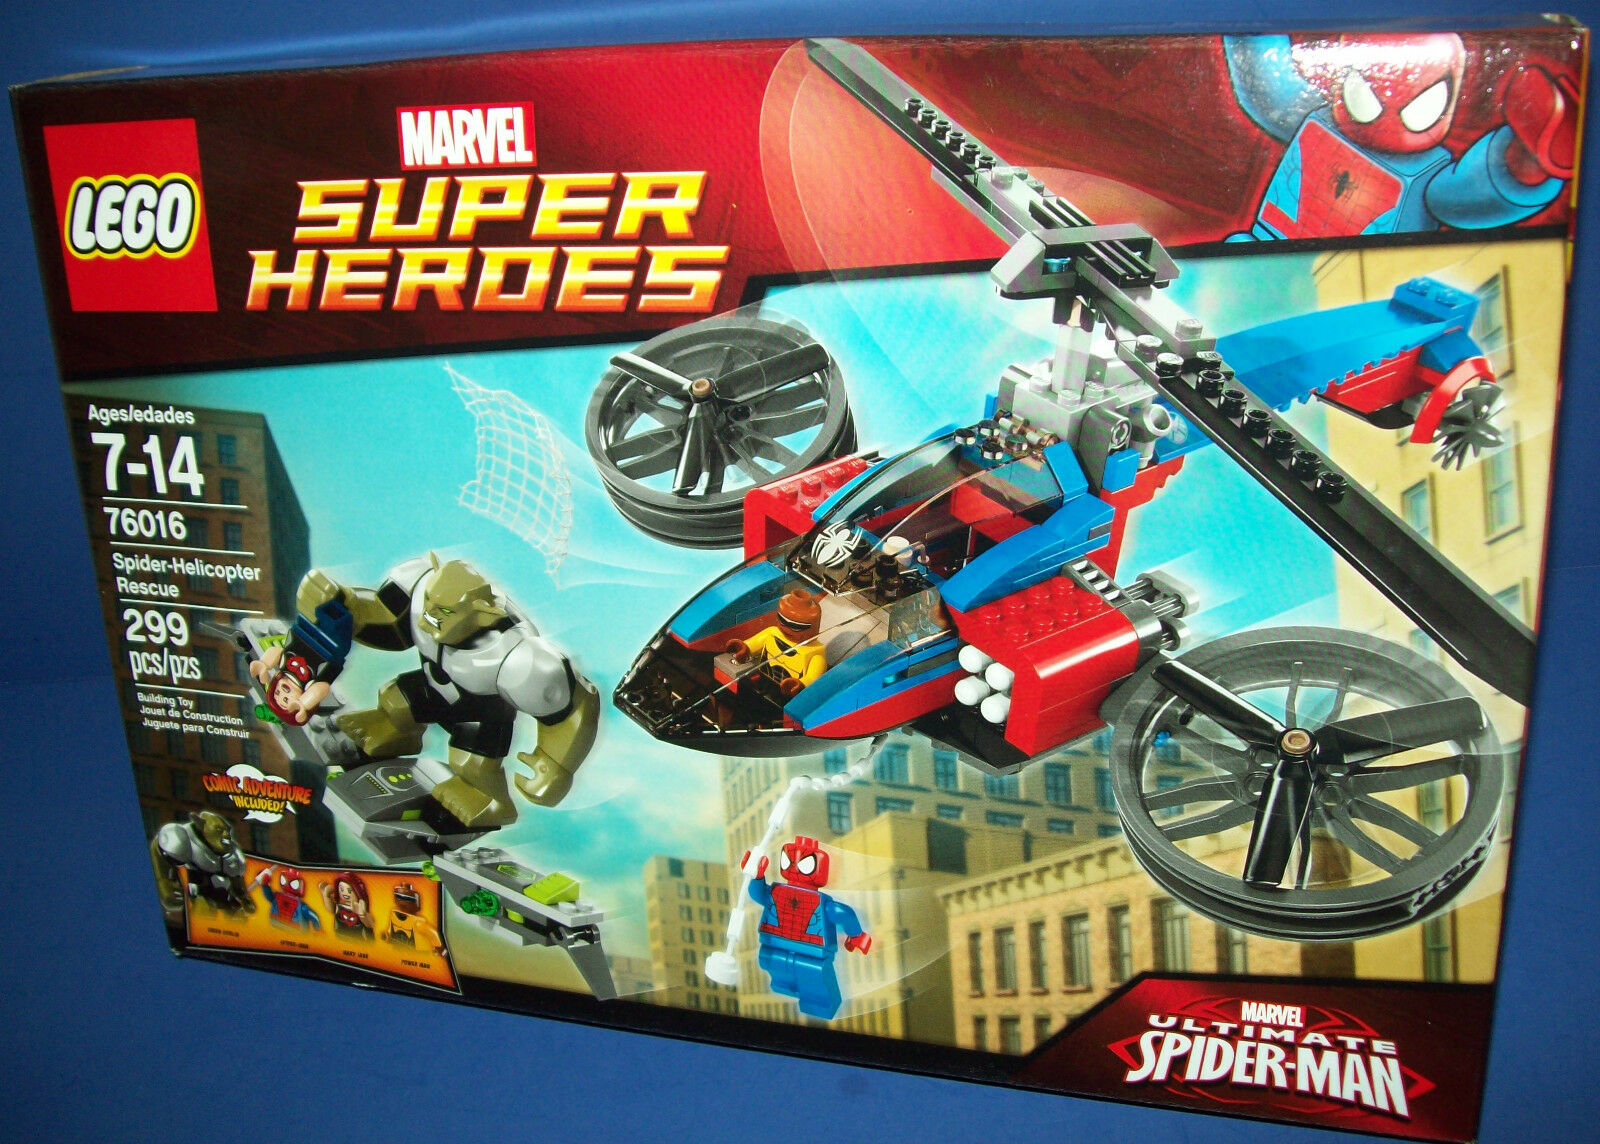 LEGO 76016 Spider-Helicopter Rescue Factory Sealed RETIRED Marvel Super Heroes